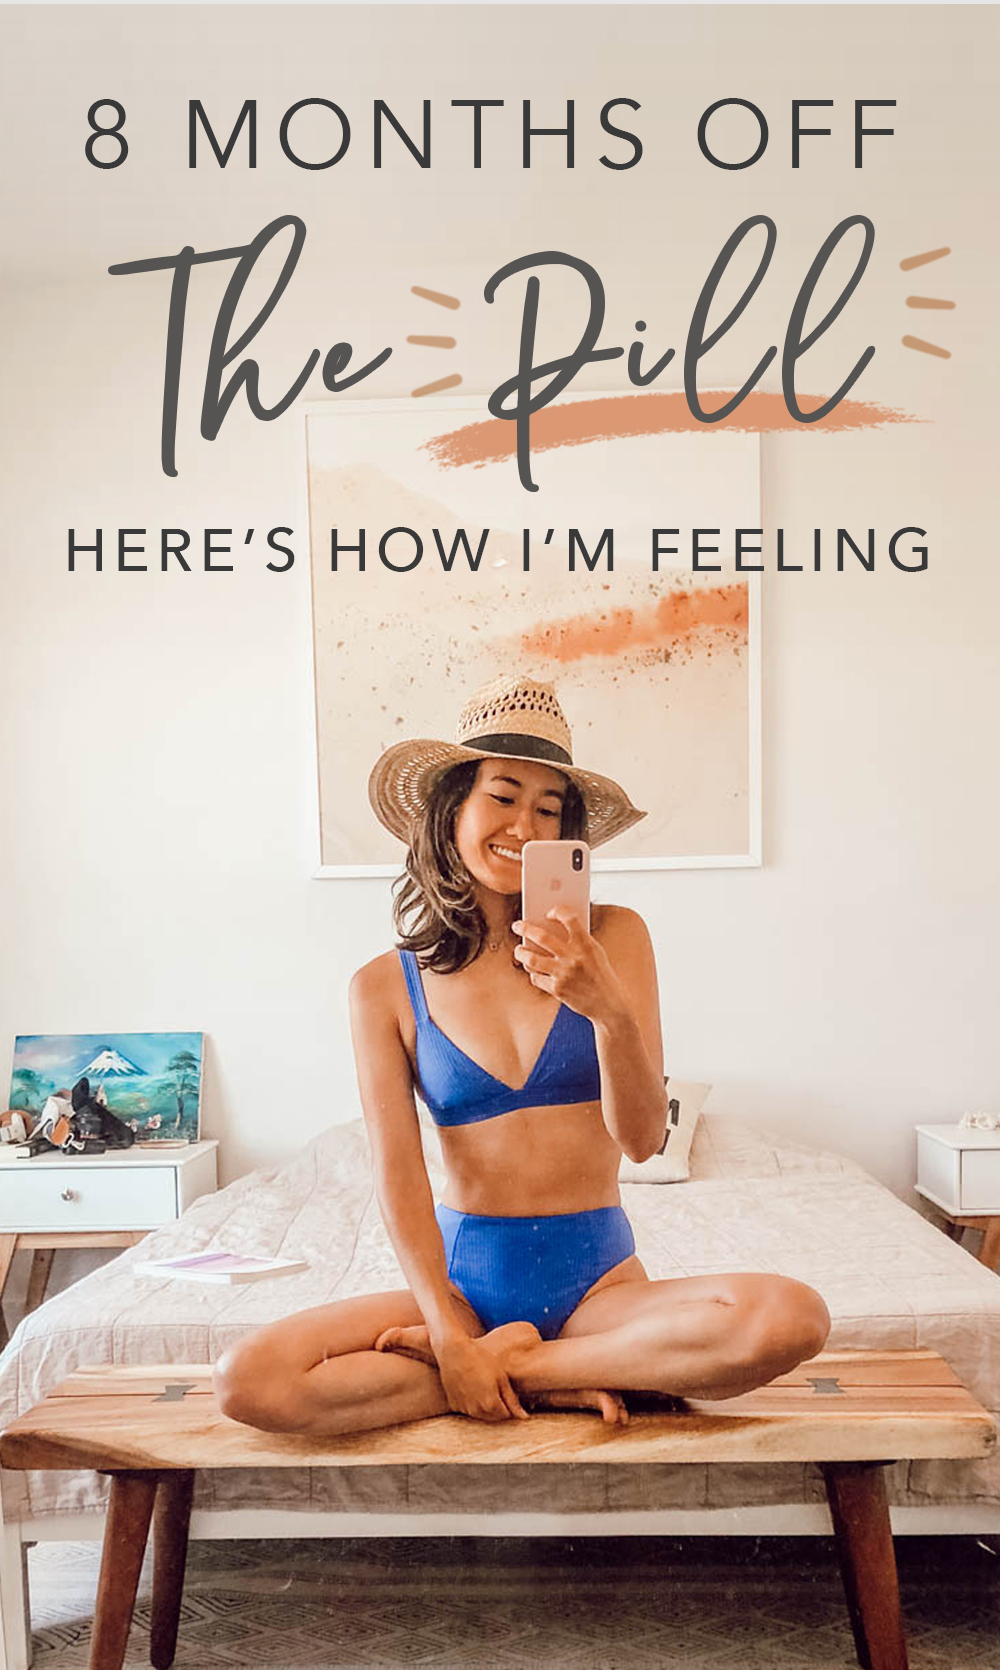 Are you thinking of going off hormonal birth control? After 9 years on the pill, I decided to quit with my doctor's recommendation to improve my gut health. In this post, I share real talk on what it's like and how I'm feeling after 8 months of being off the pill. Plus you'll find some helpful tips for dealing with some of the side effects you might experience. | Om & the City Blog #omandthecity #wellnesstips #birthcontrol #thepill #healthtips